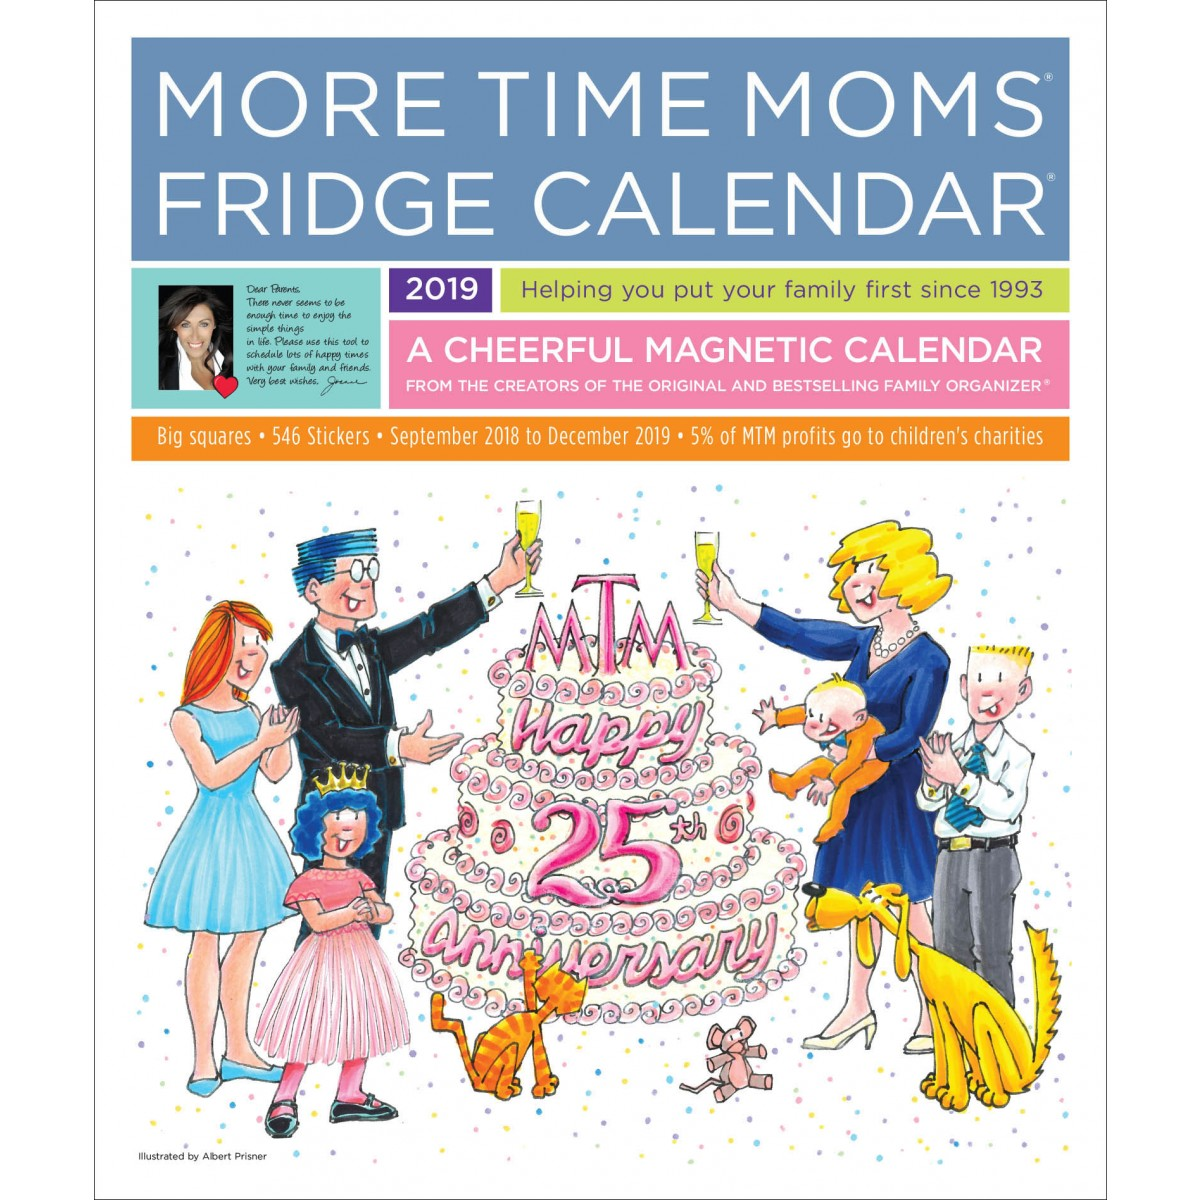 Mom S Busy Year Calendar 2019 With Fridge 2018 More Time Moms